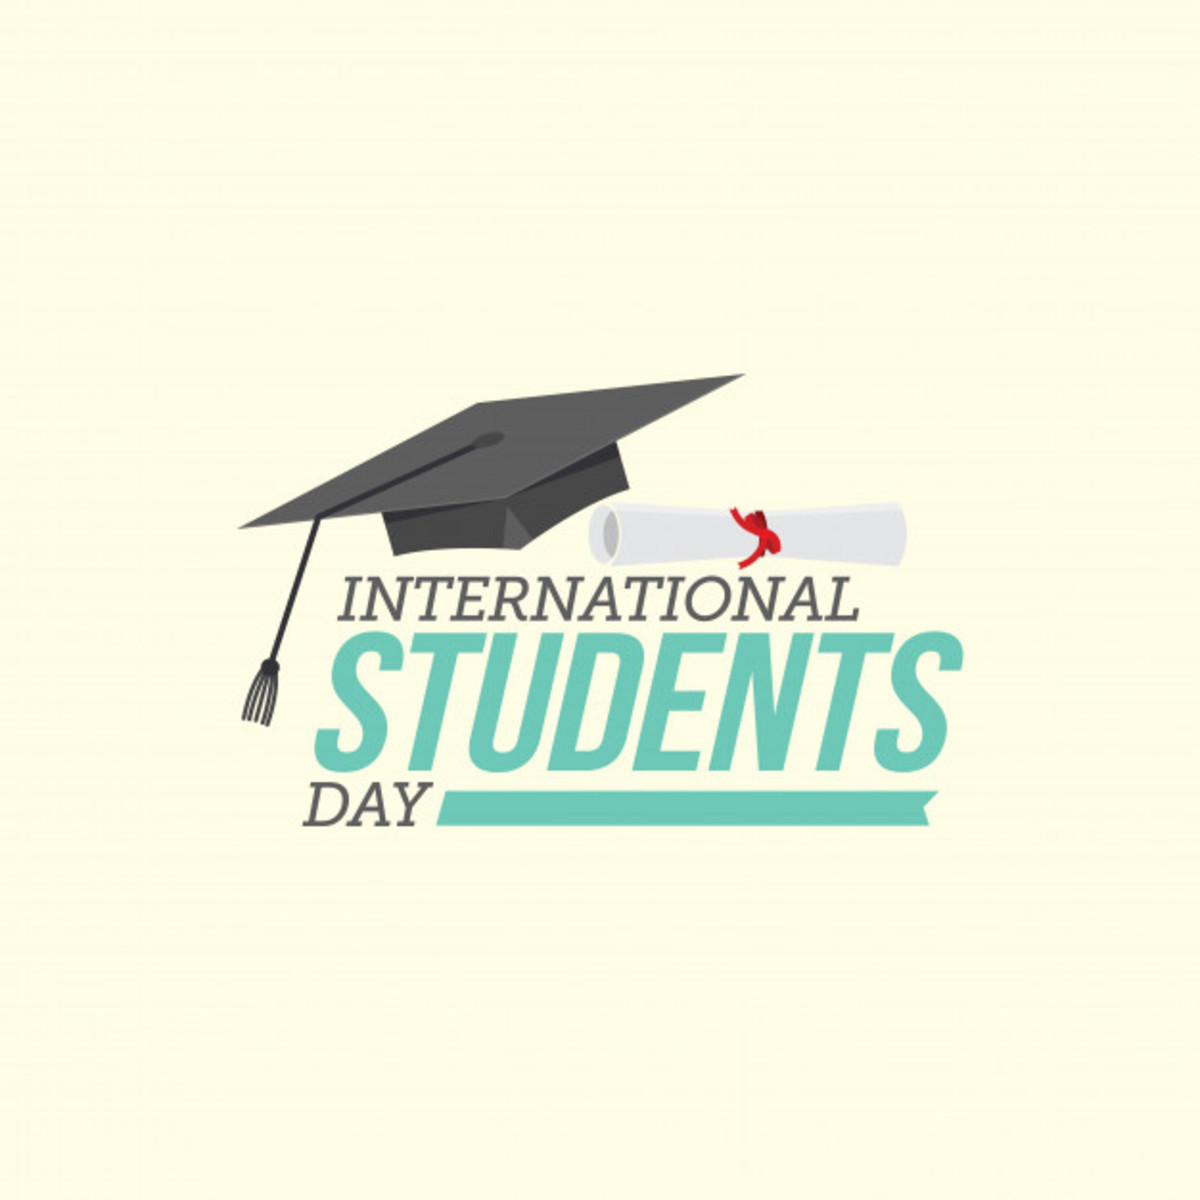 Happy International Students Day!